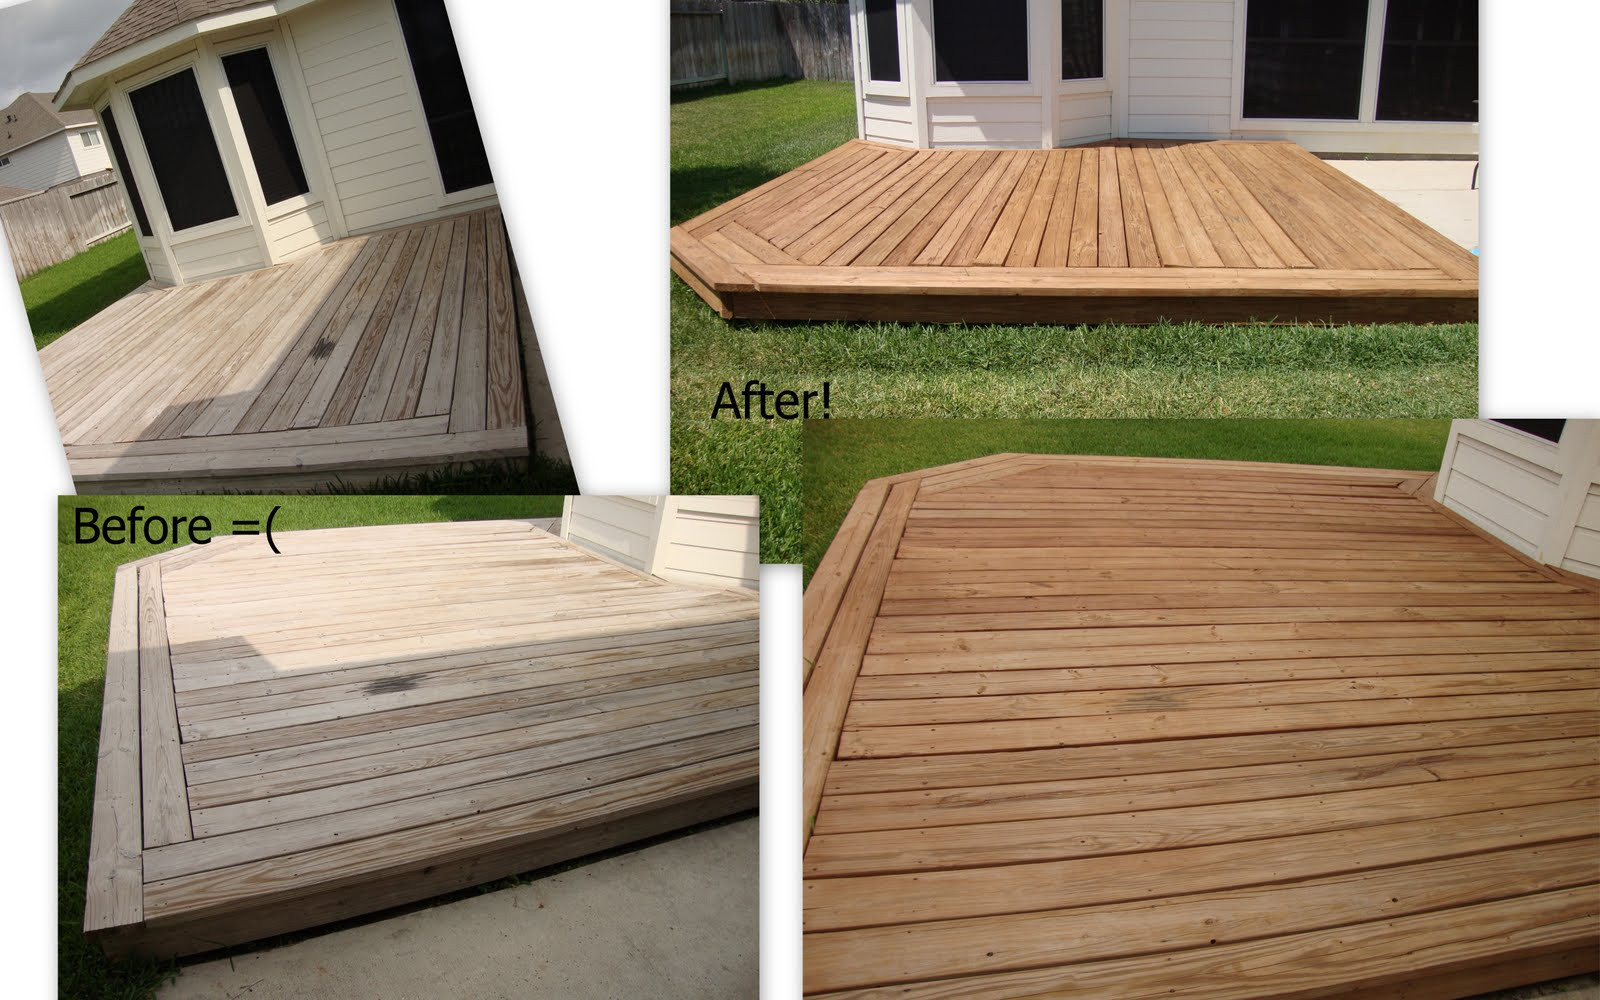 Wood Deck Paint Reviews  Lady Kay s Kitchen Eco Friendly Non Toxic Deck Stain